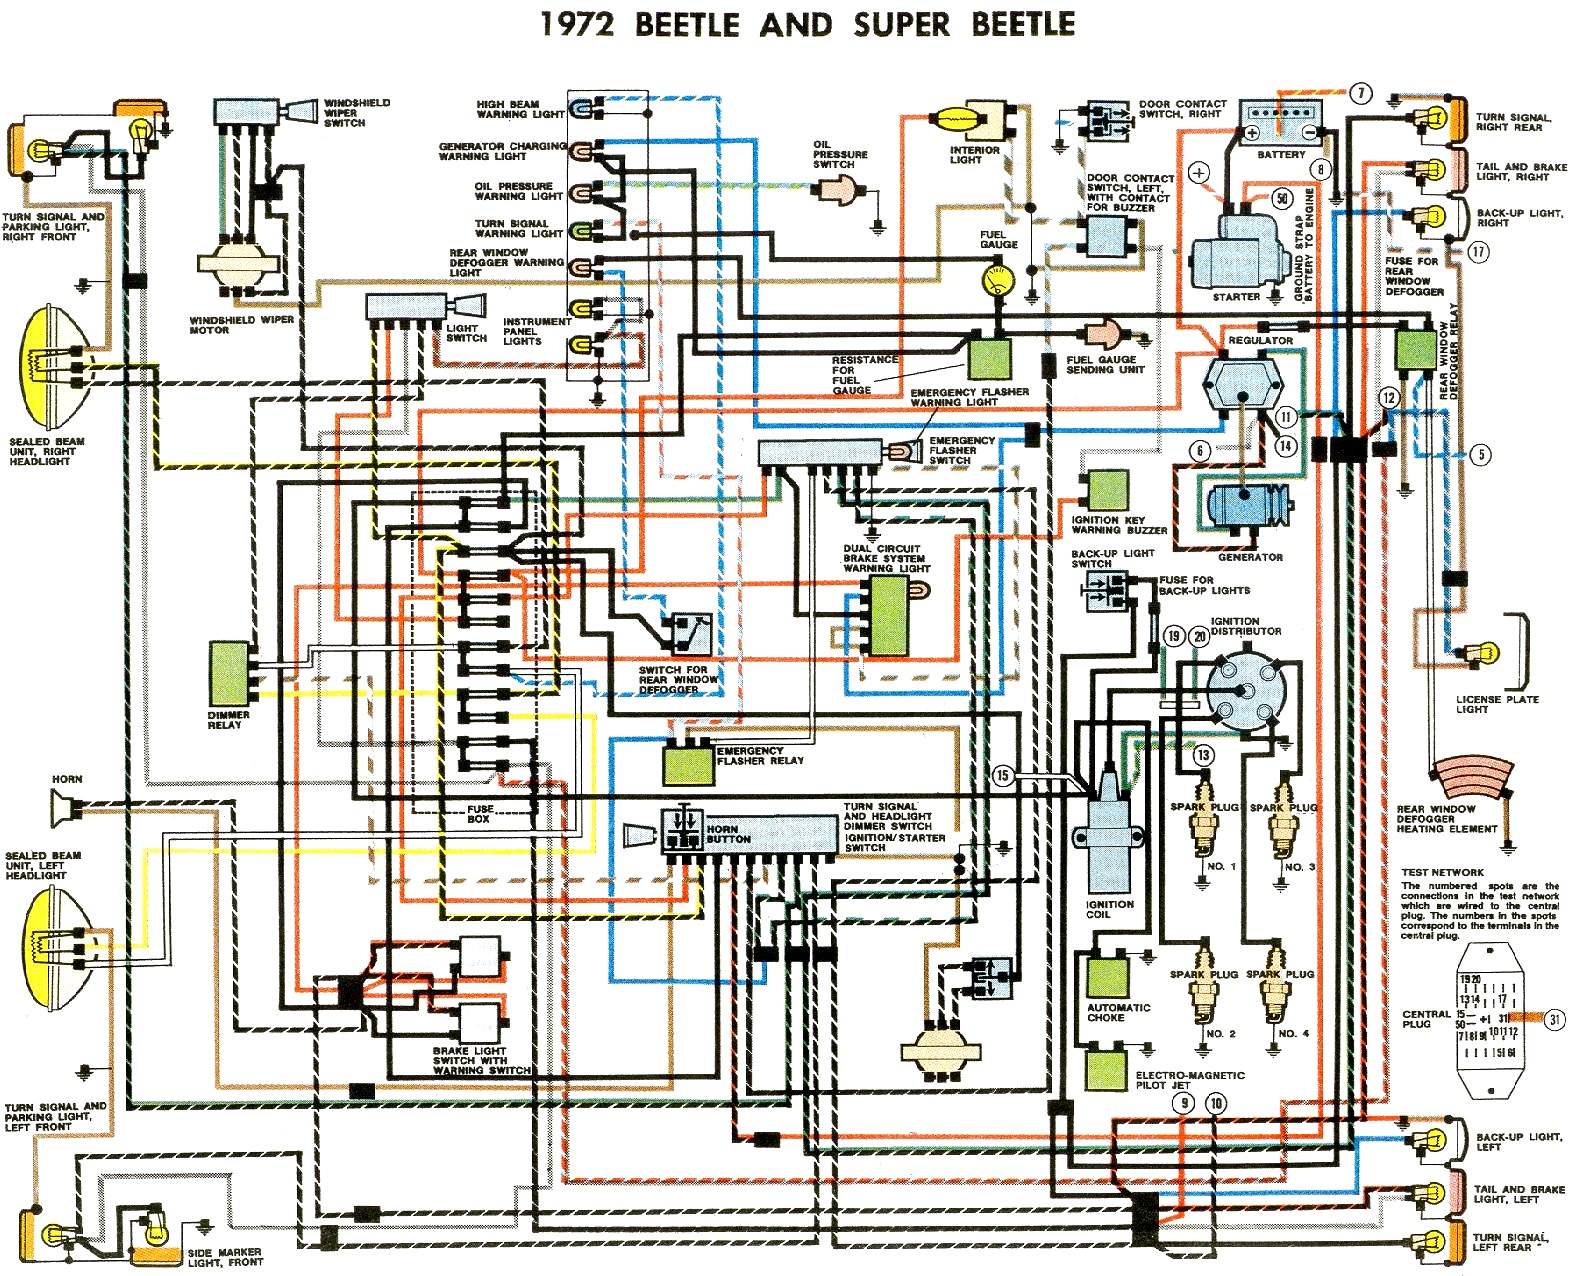 bug_72 1972 beetle wiring diagram thegoldenbug com 76 vw beetle wiring diagram at edmiracle.co